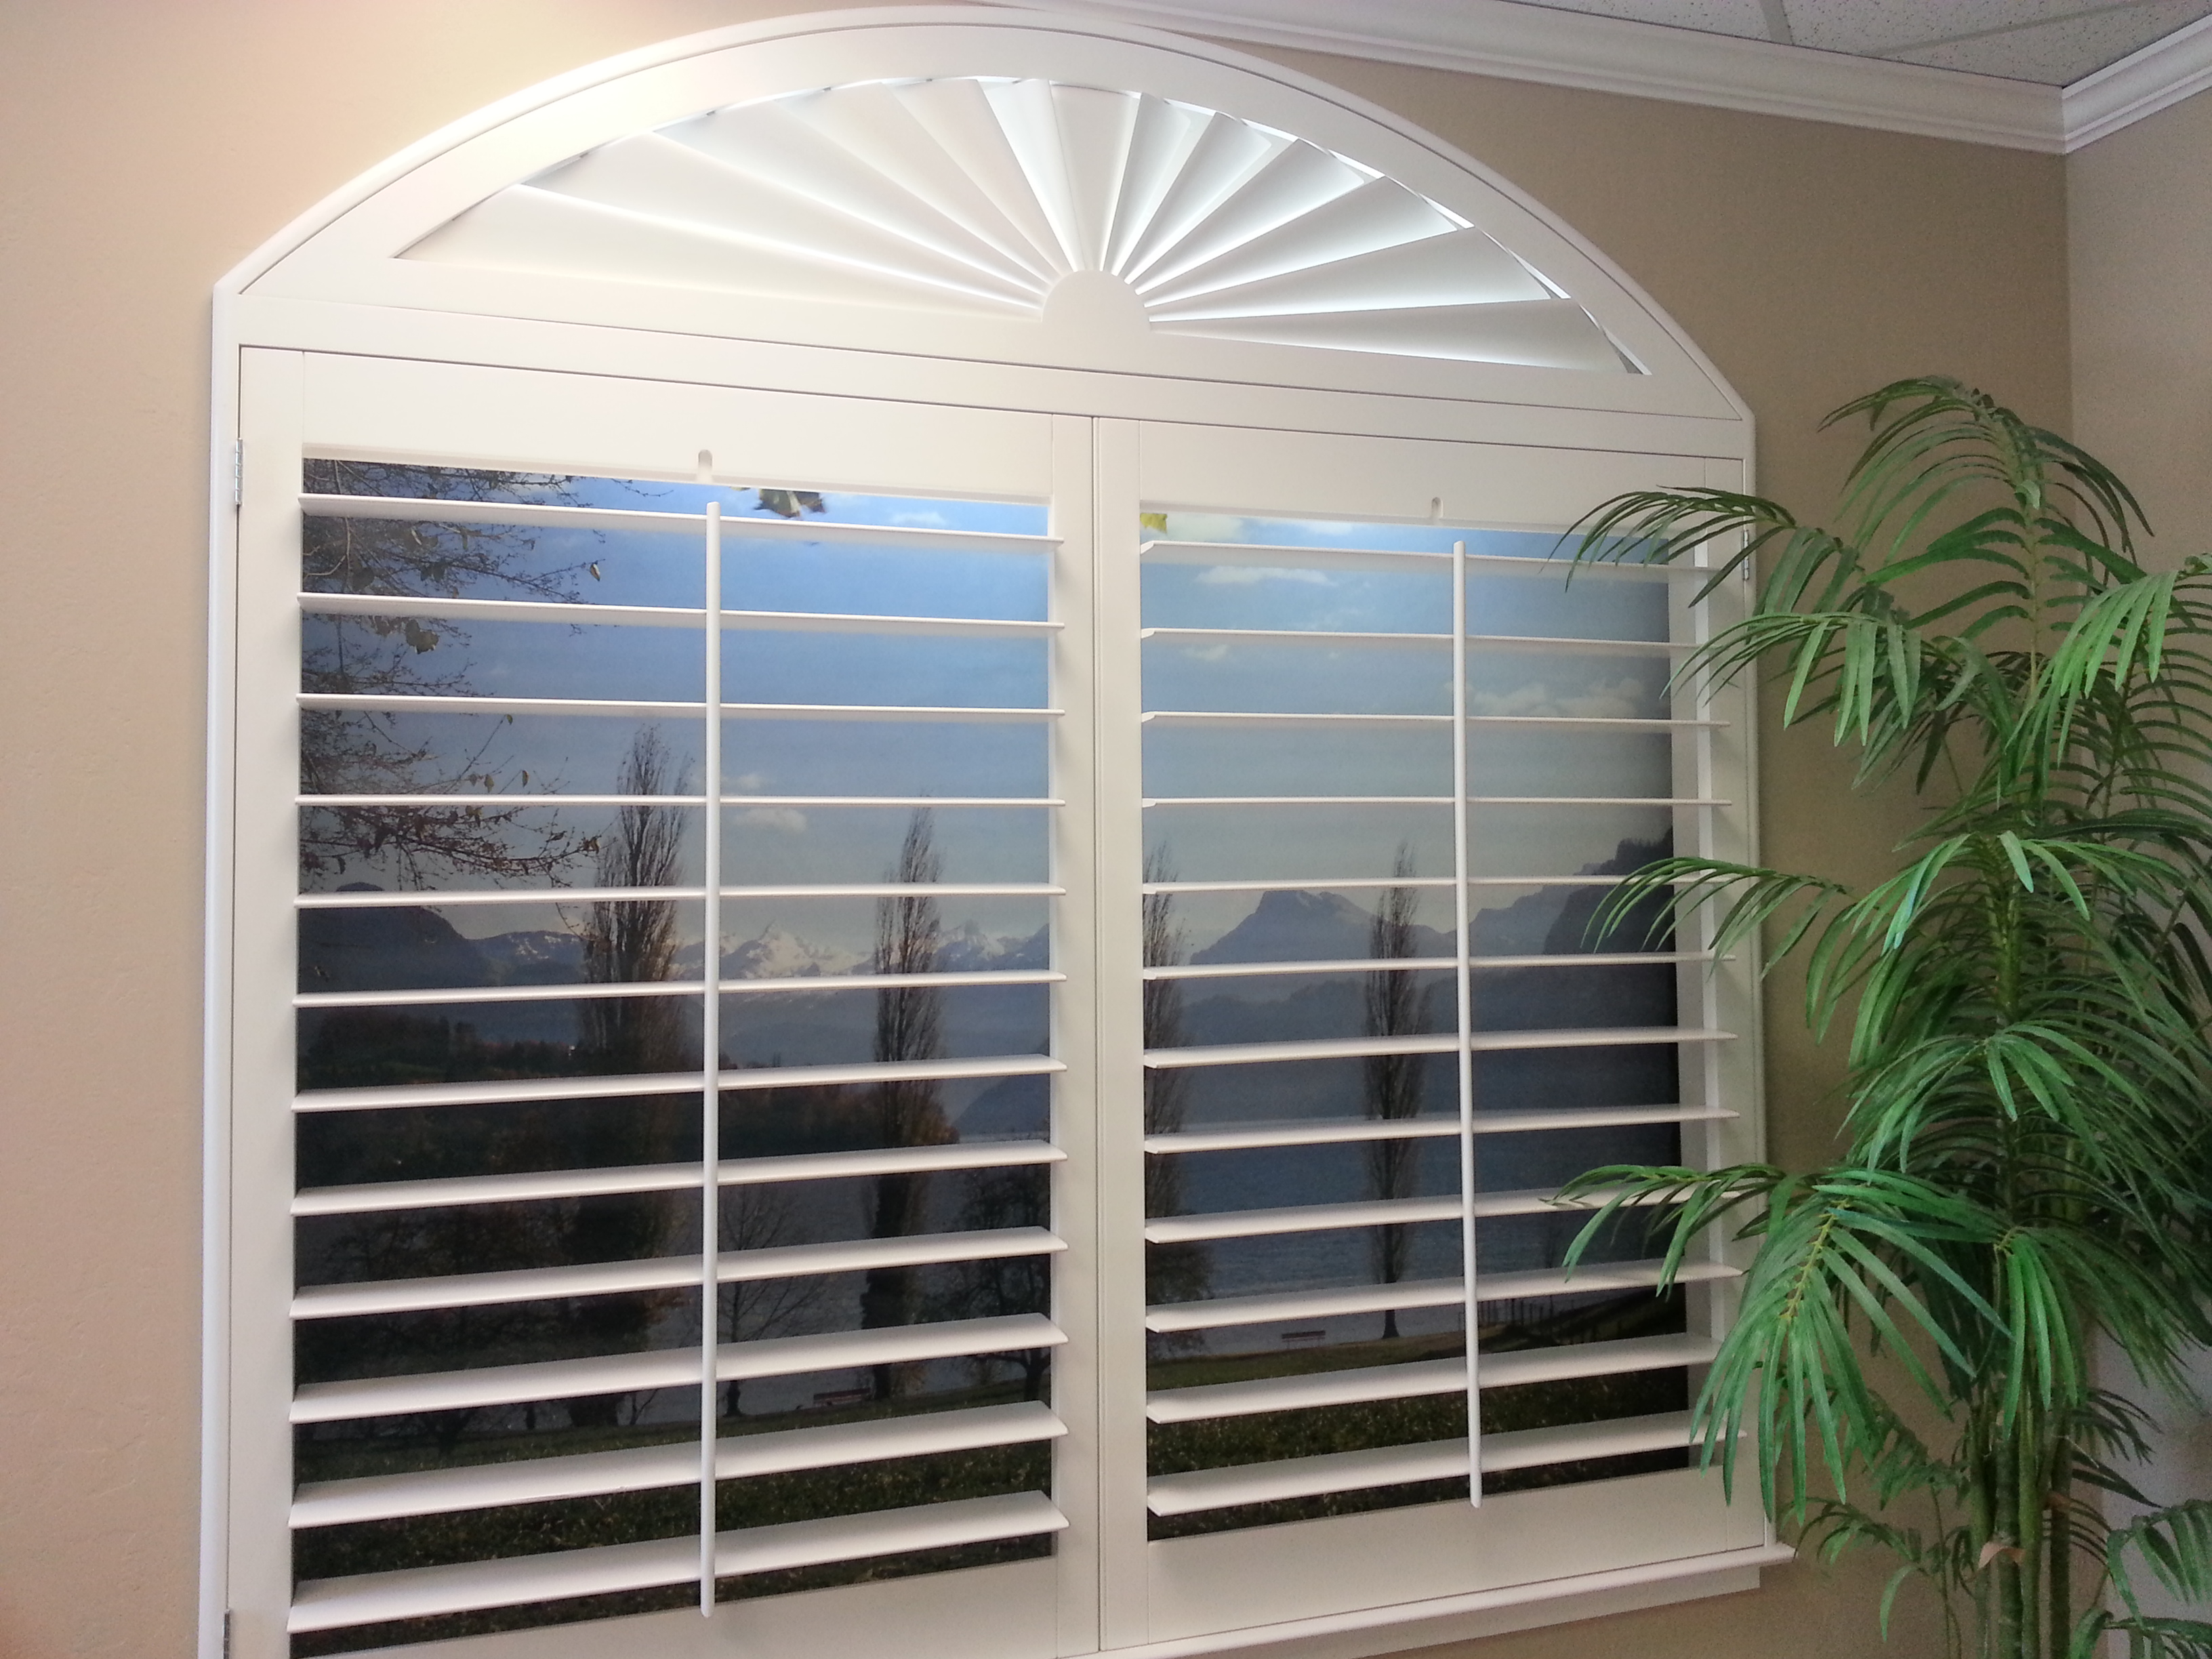 Diy Shutters Interior Cheap Diy Wooden Shutters From Fence Wood With Diy Shutters Interior